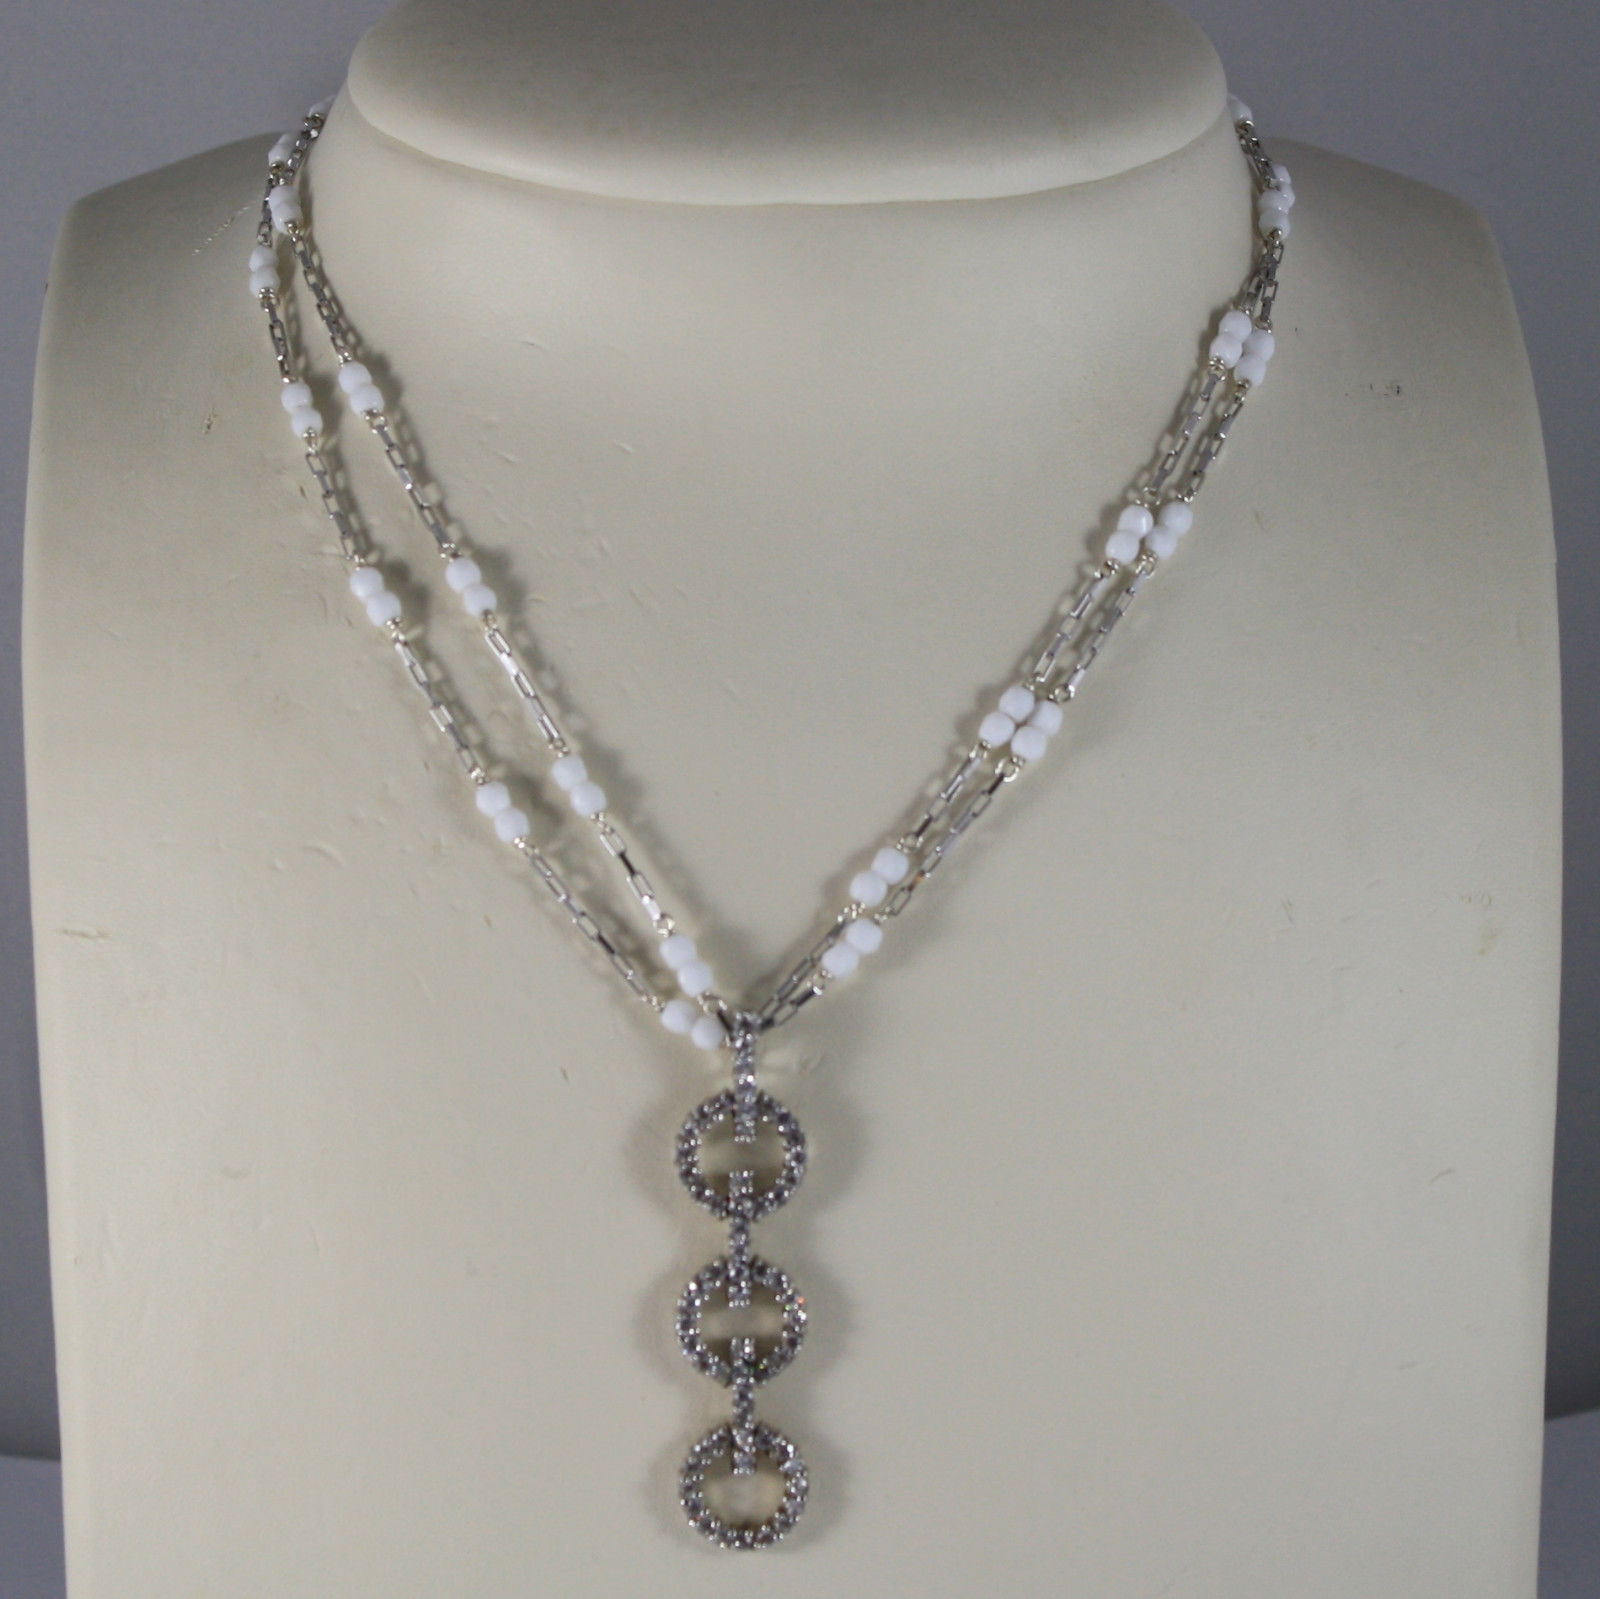 .925 RHODIUM MULTI STRAND NECKLACE WITH WHITE AGATE AND ZIRCONS